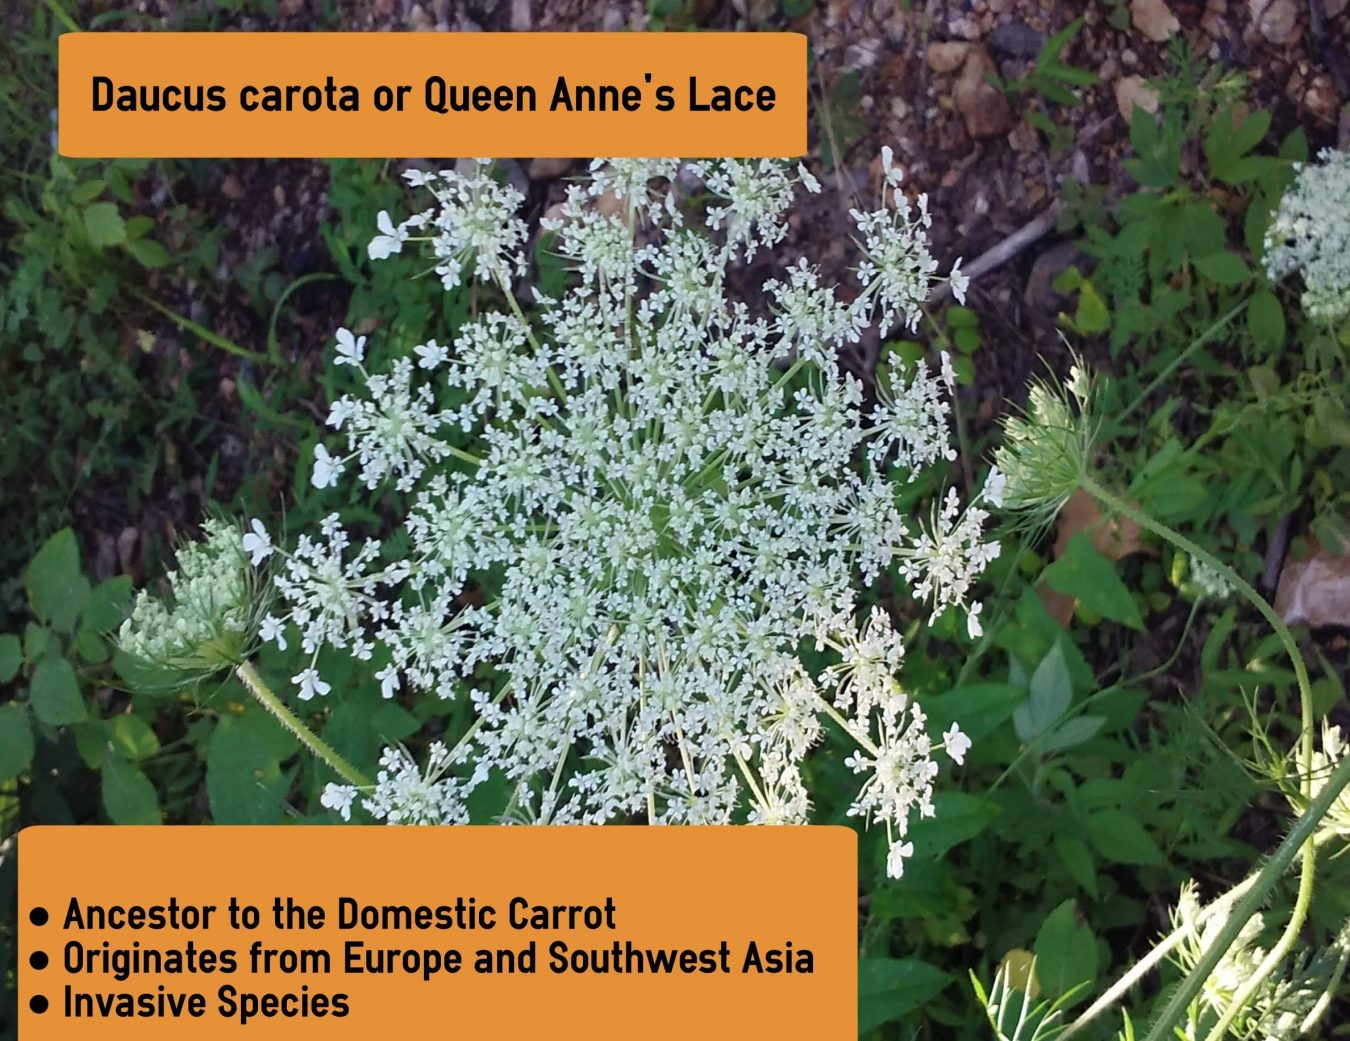 queen Anne's Lace infographic